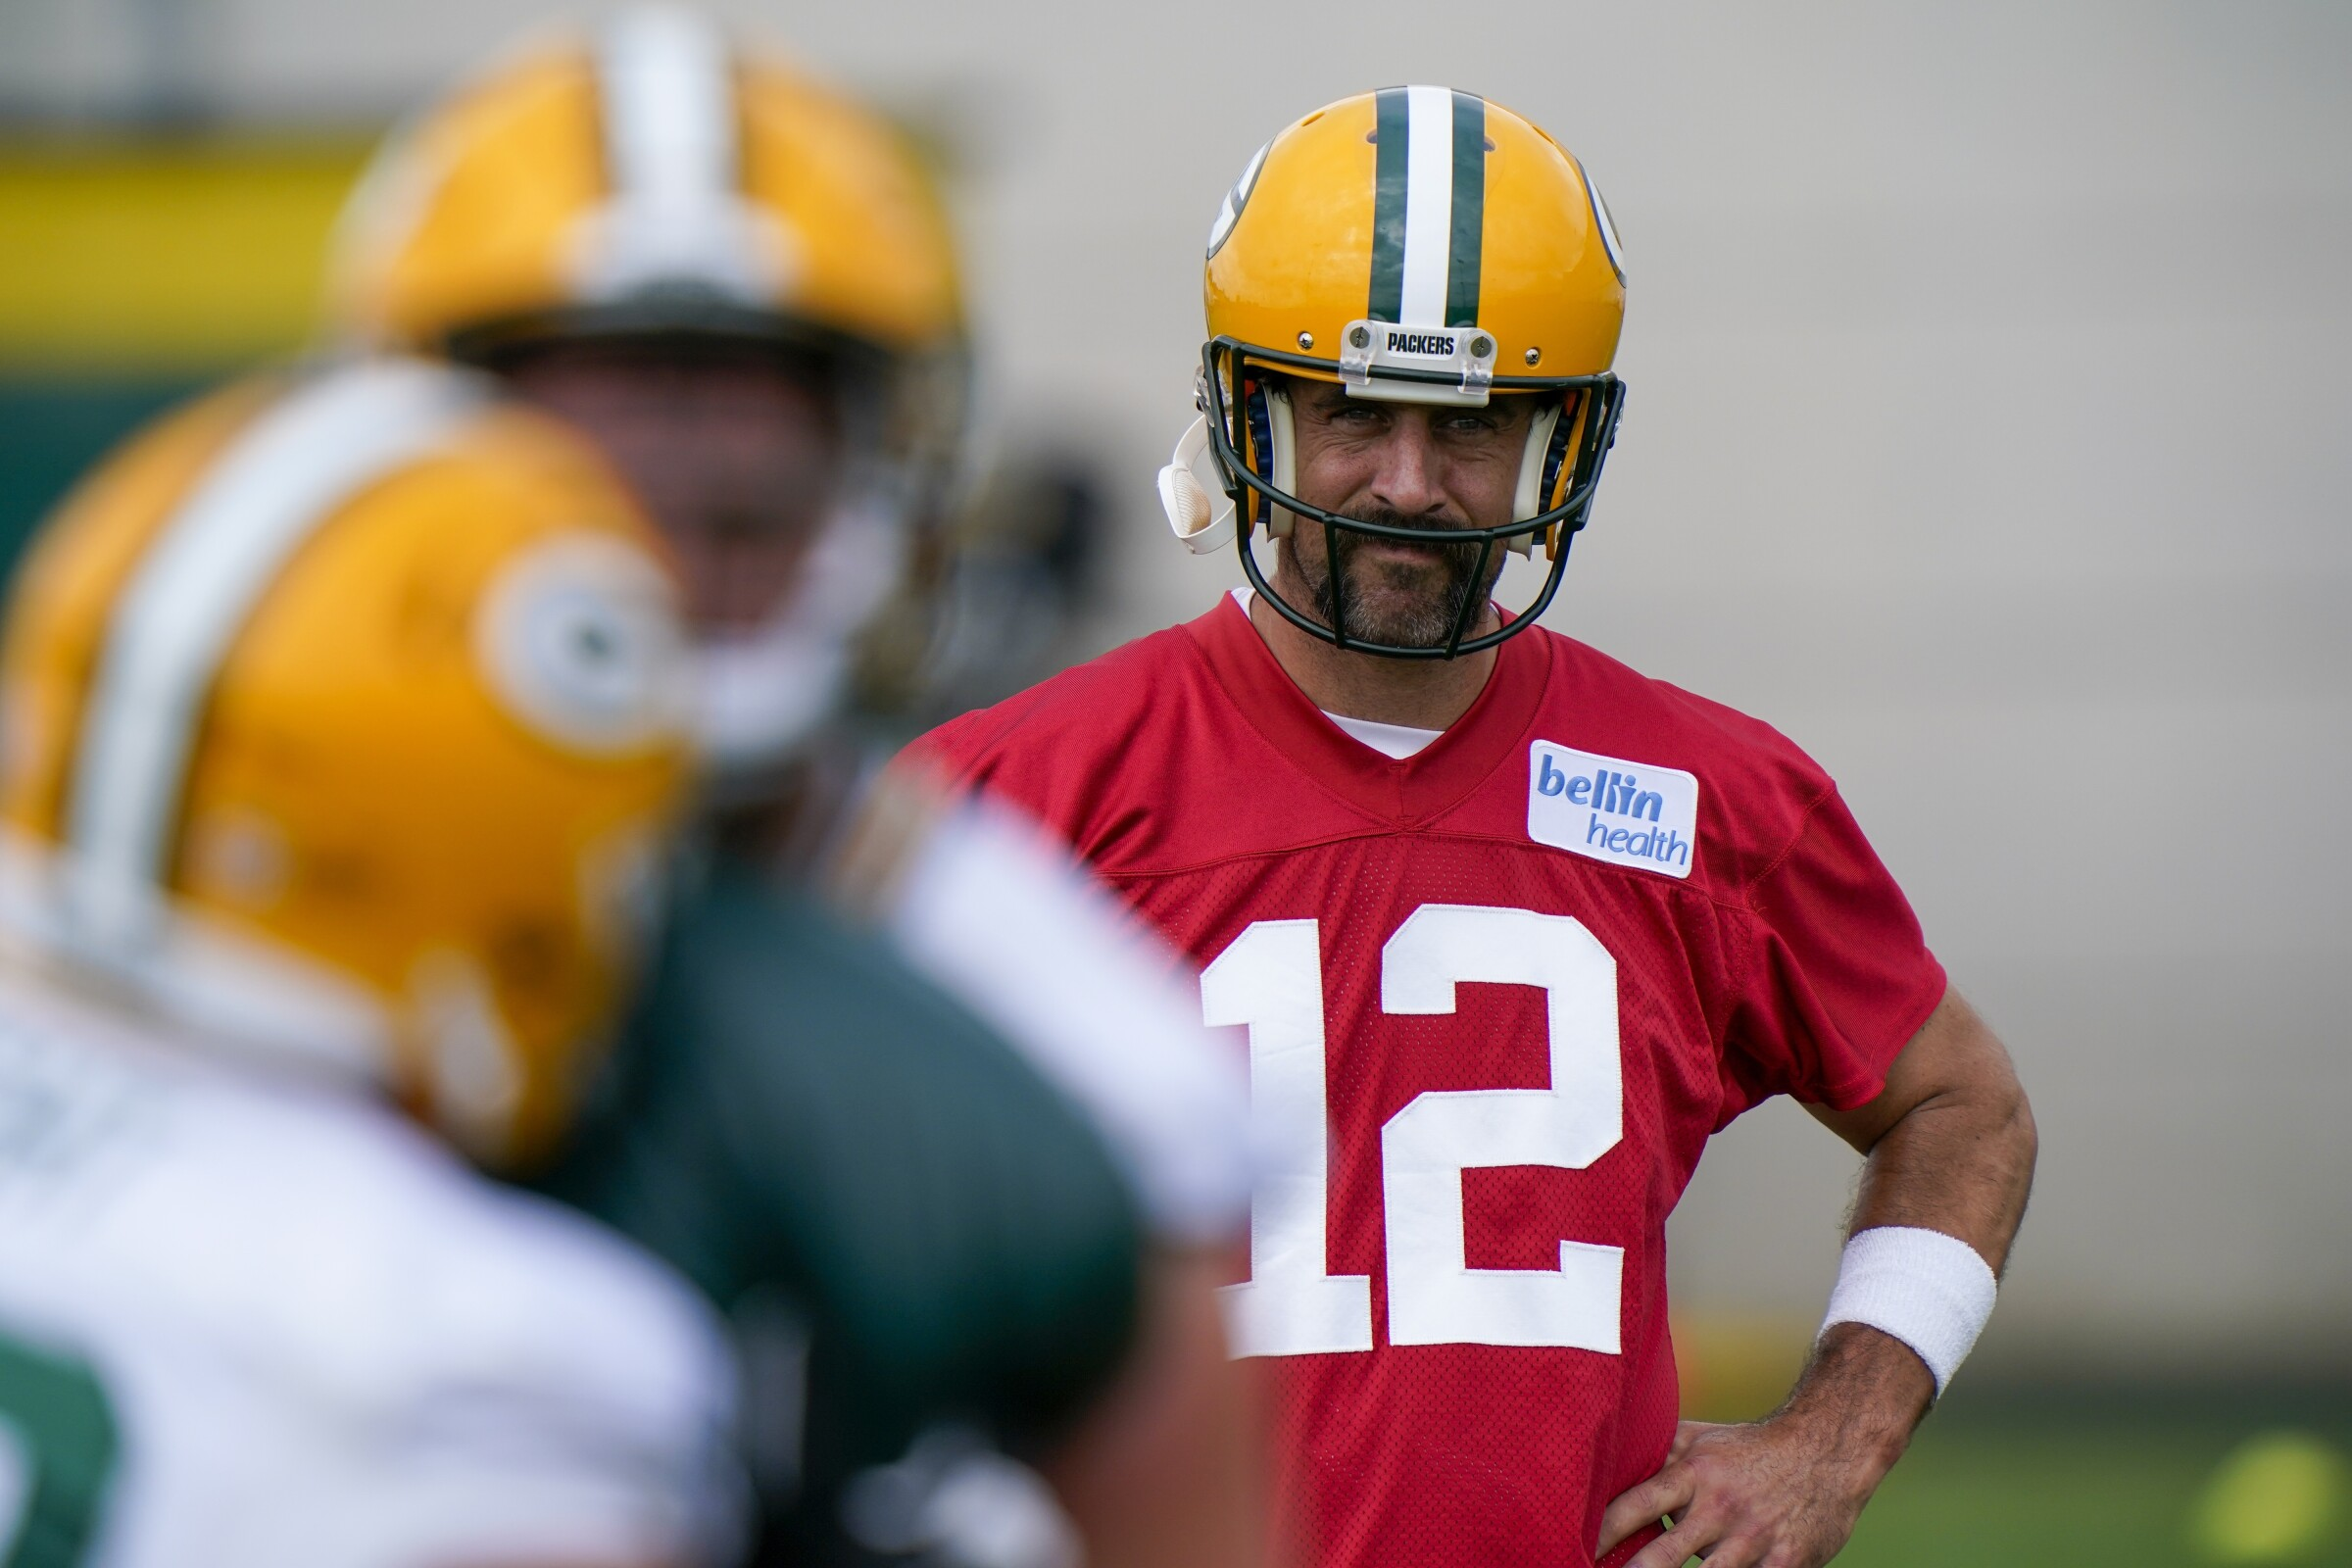 Green Bay Packers' Aaron Rodgers watches during NFL football training camp Saturday, Aug. 15, 2020.